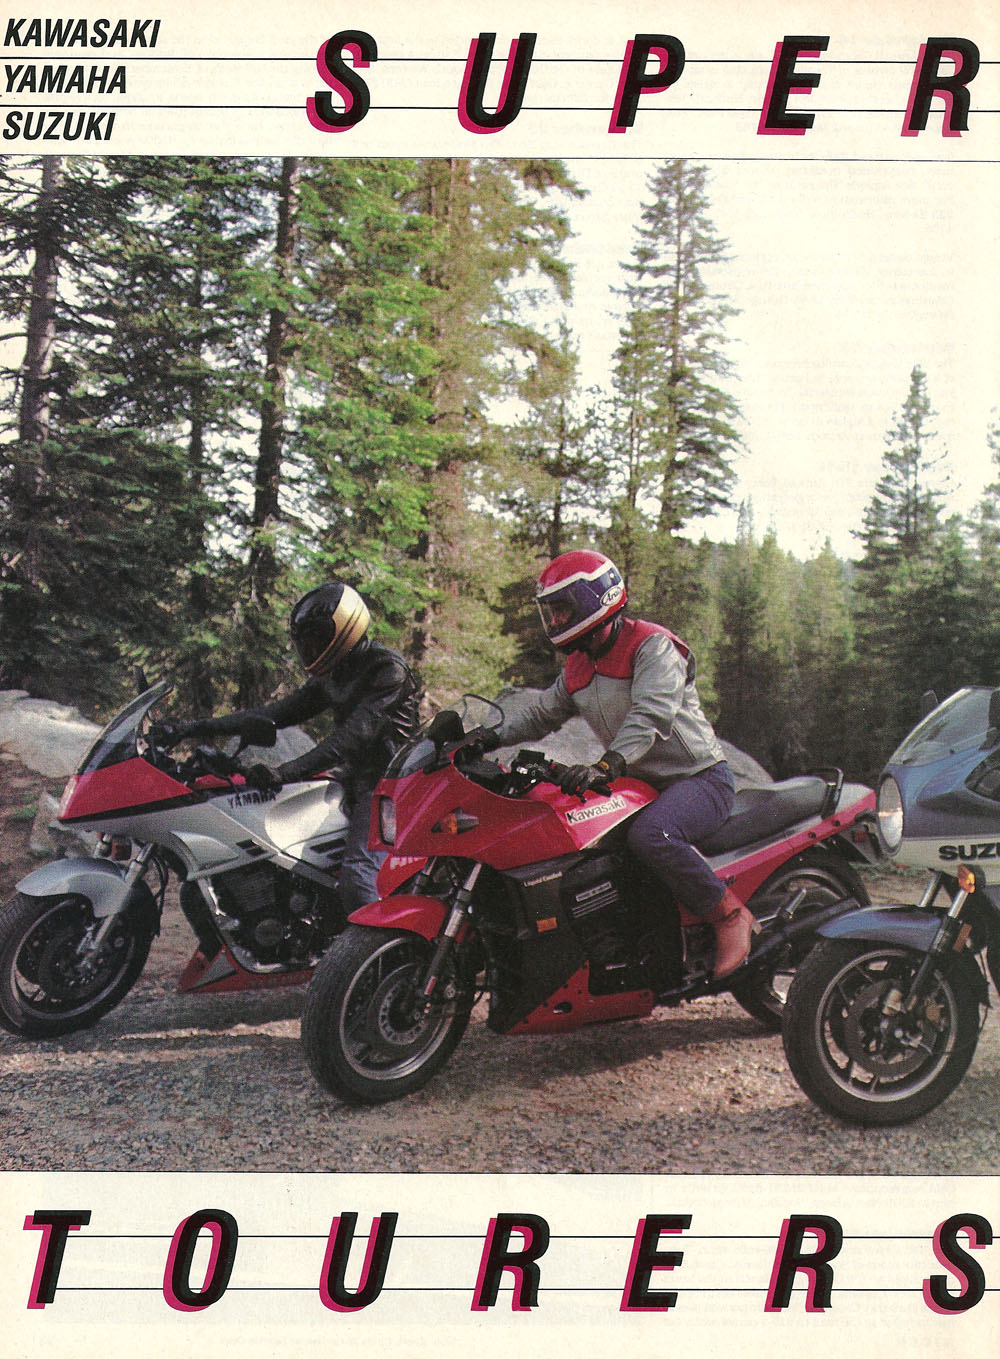 1984 fj1100 zx900 gs1150 road test 01.jpg